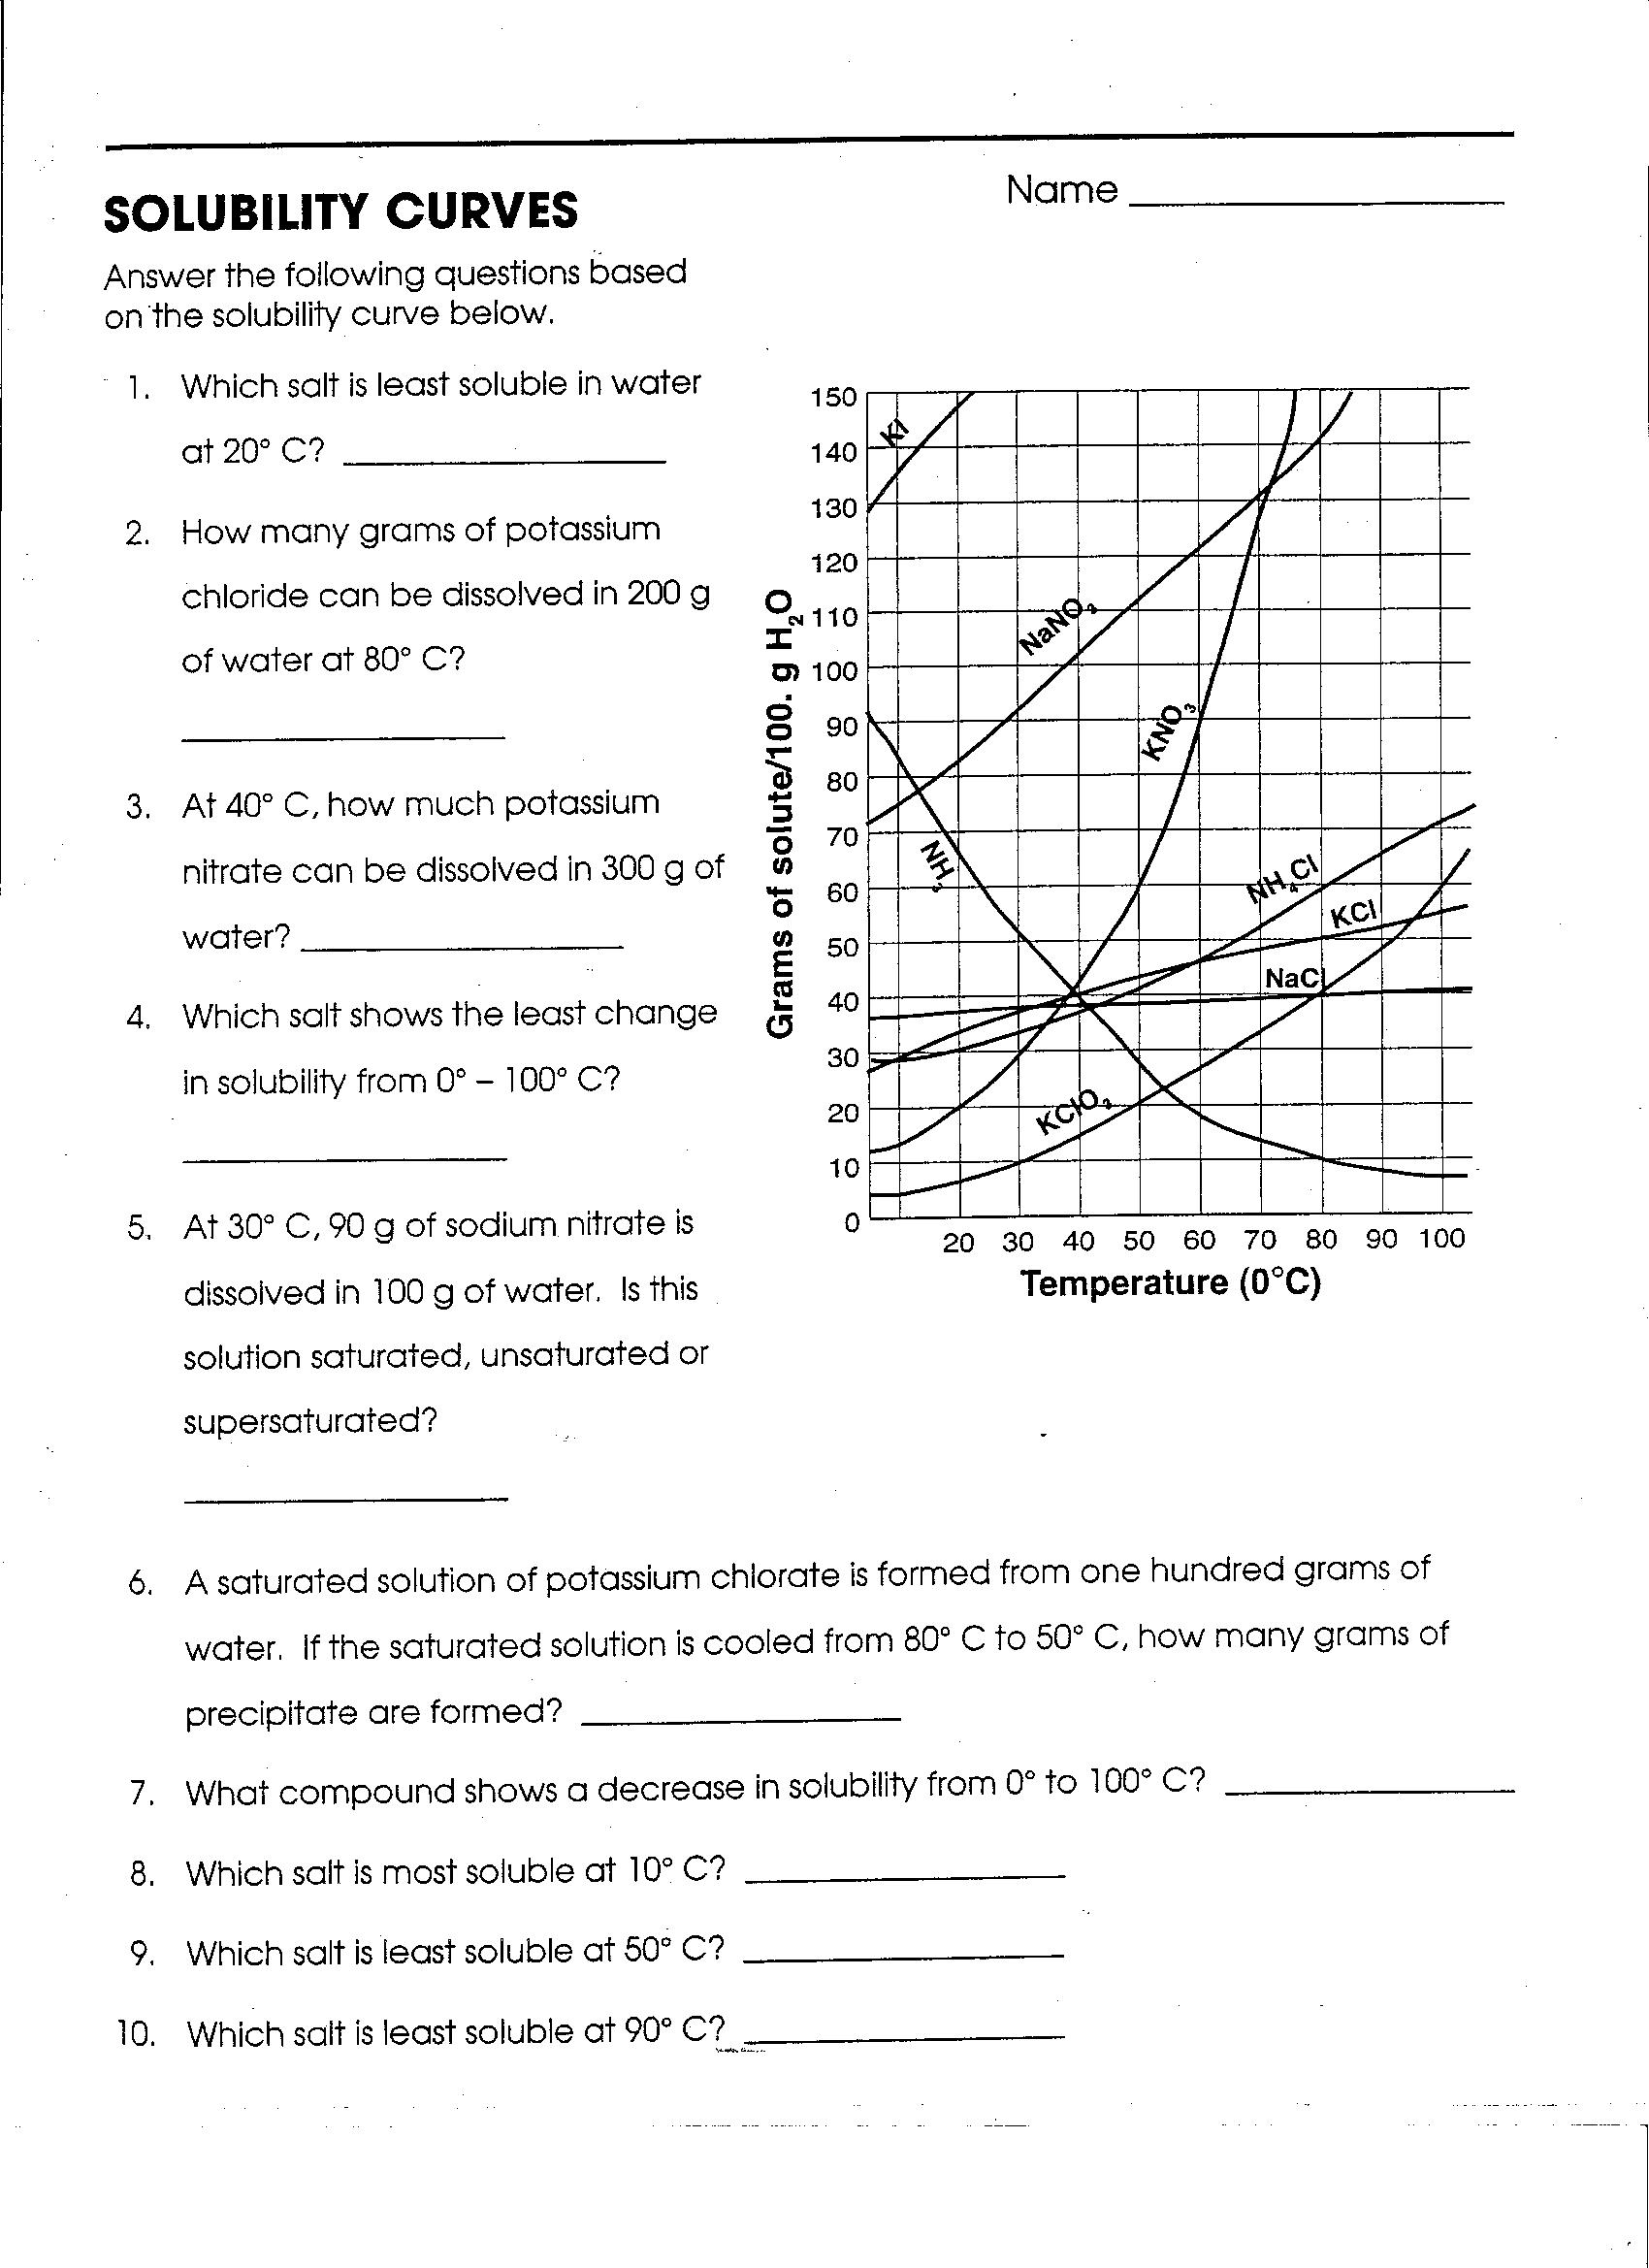 Solubility Rules Worksheet - Davezan